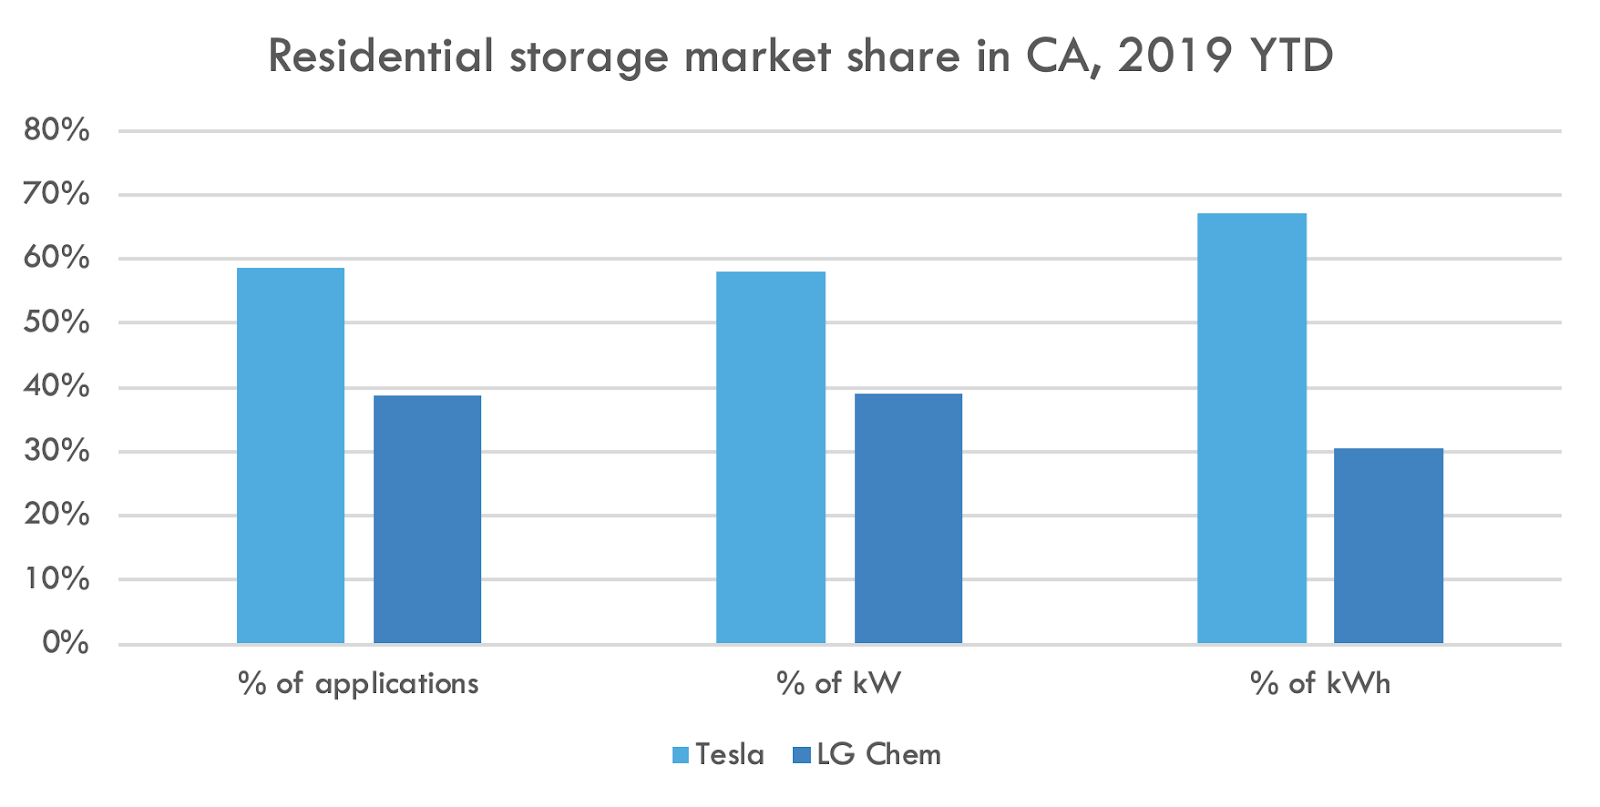 residential storage market share by company in 2019 chart